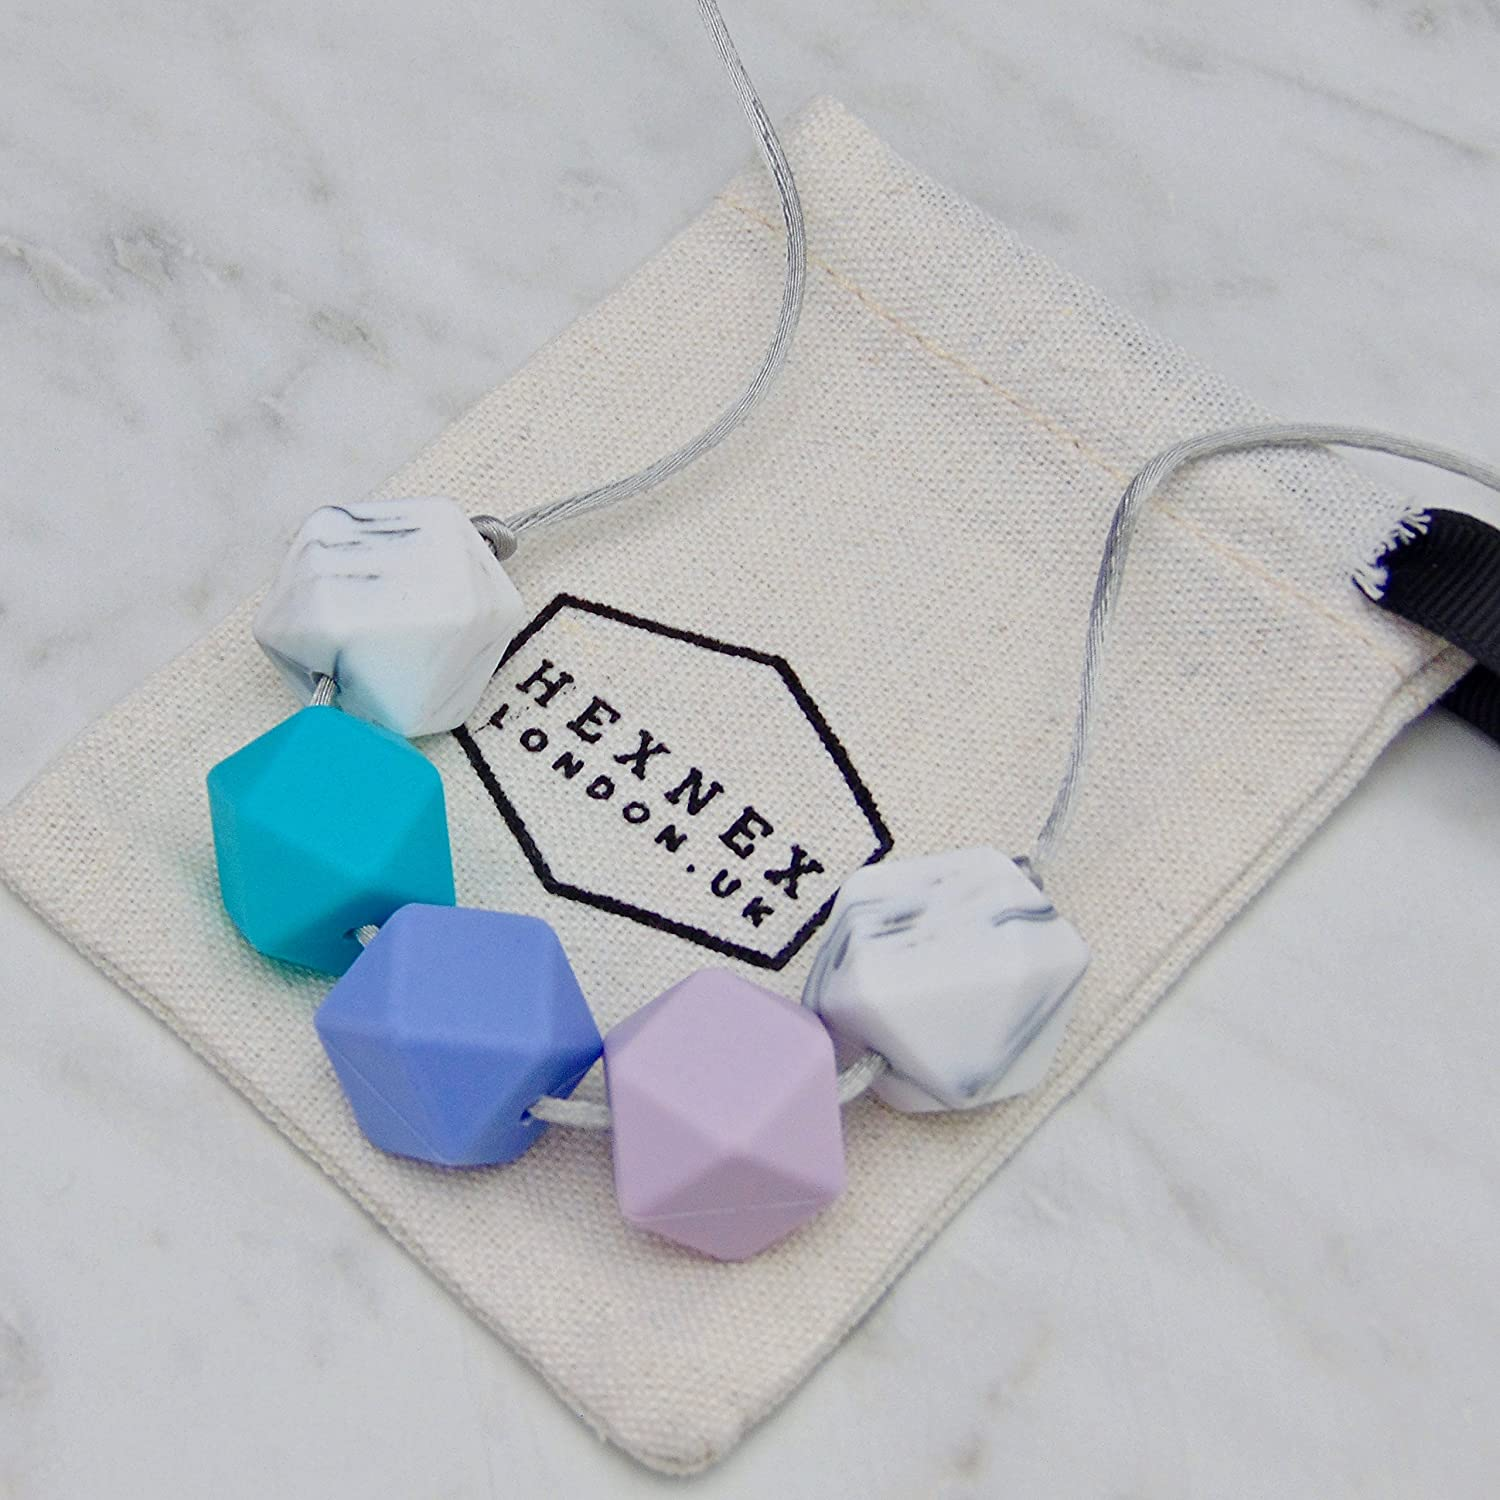 June Alexandrite Birthstone Baby Proof Silicone Teething Necklace for  Breastfeeding Babywearing and Teething New Mum New Baby Shower Gift BPA  Free  ... 3087ce1b257